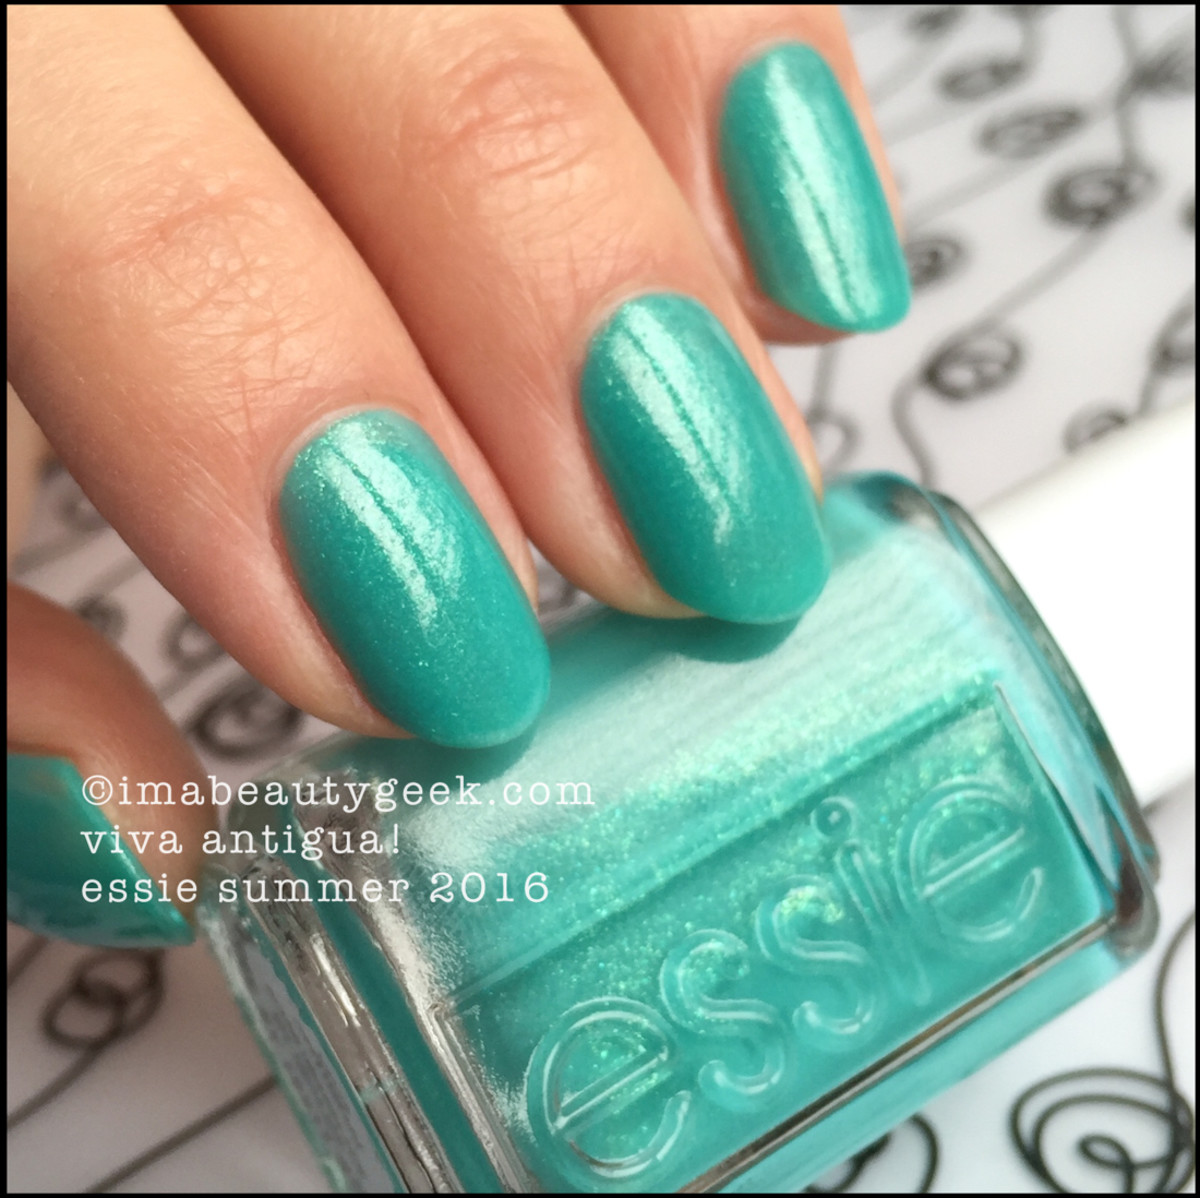 Essie Viva Antigua_Essie Summer 2016 Swatches Review